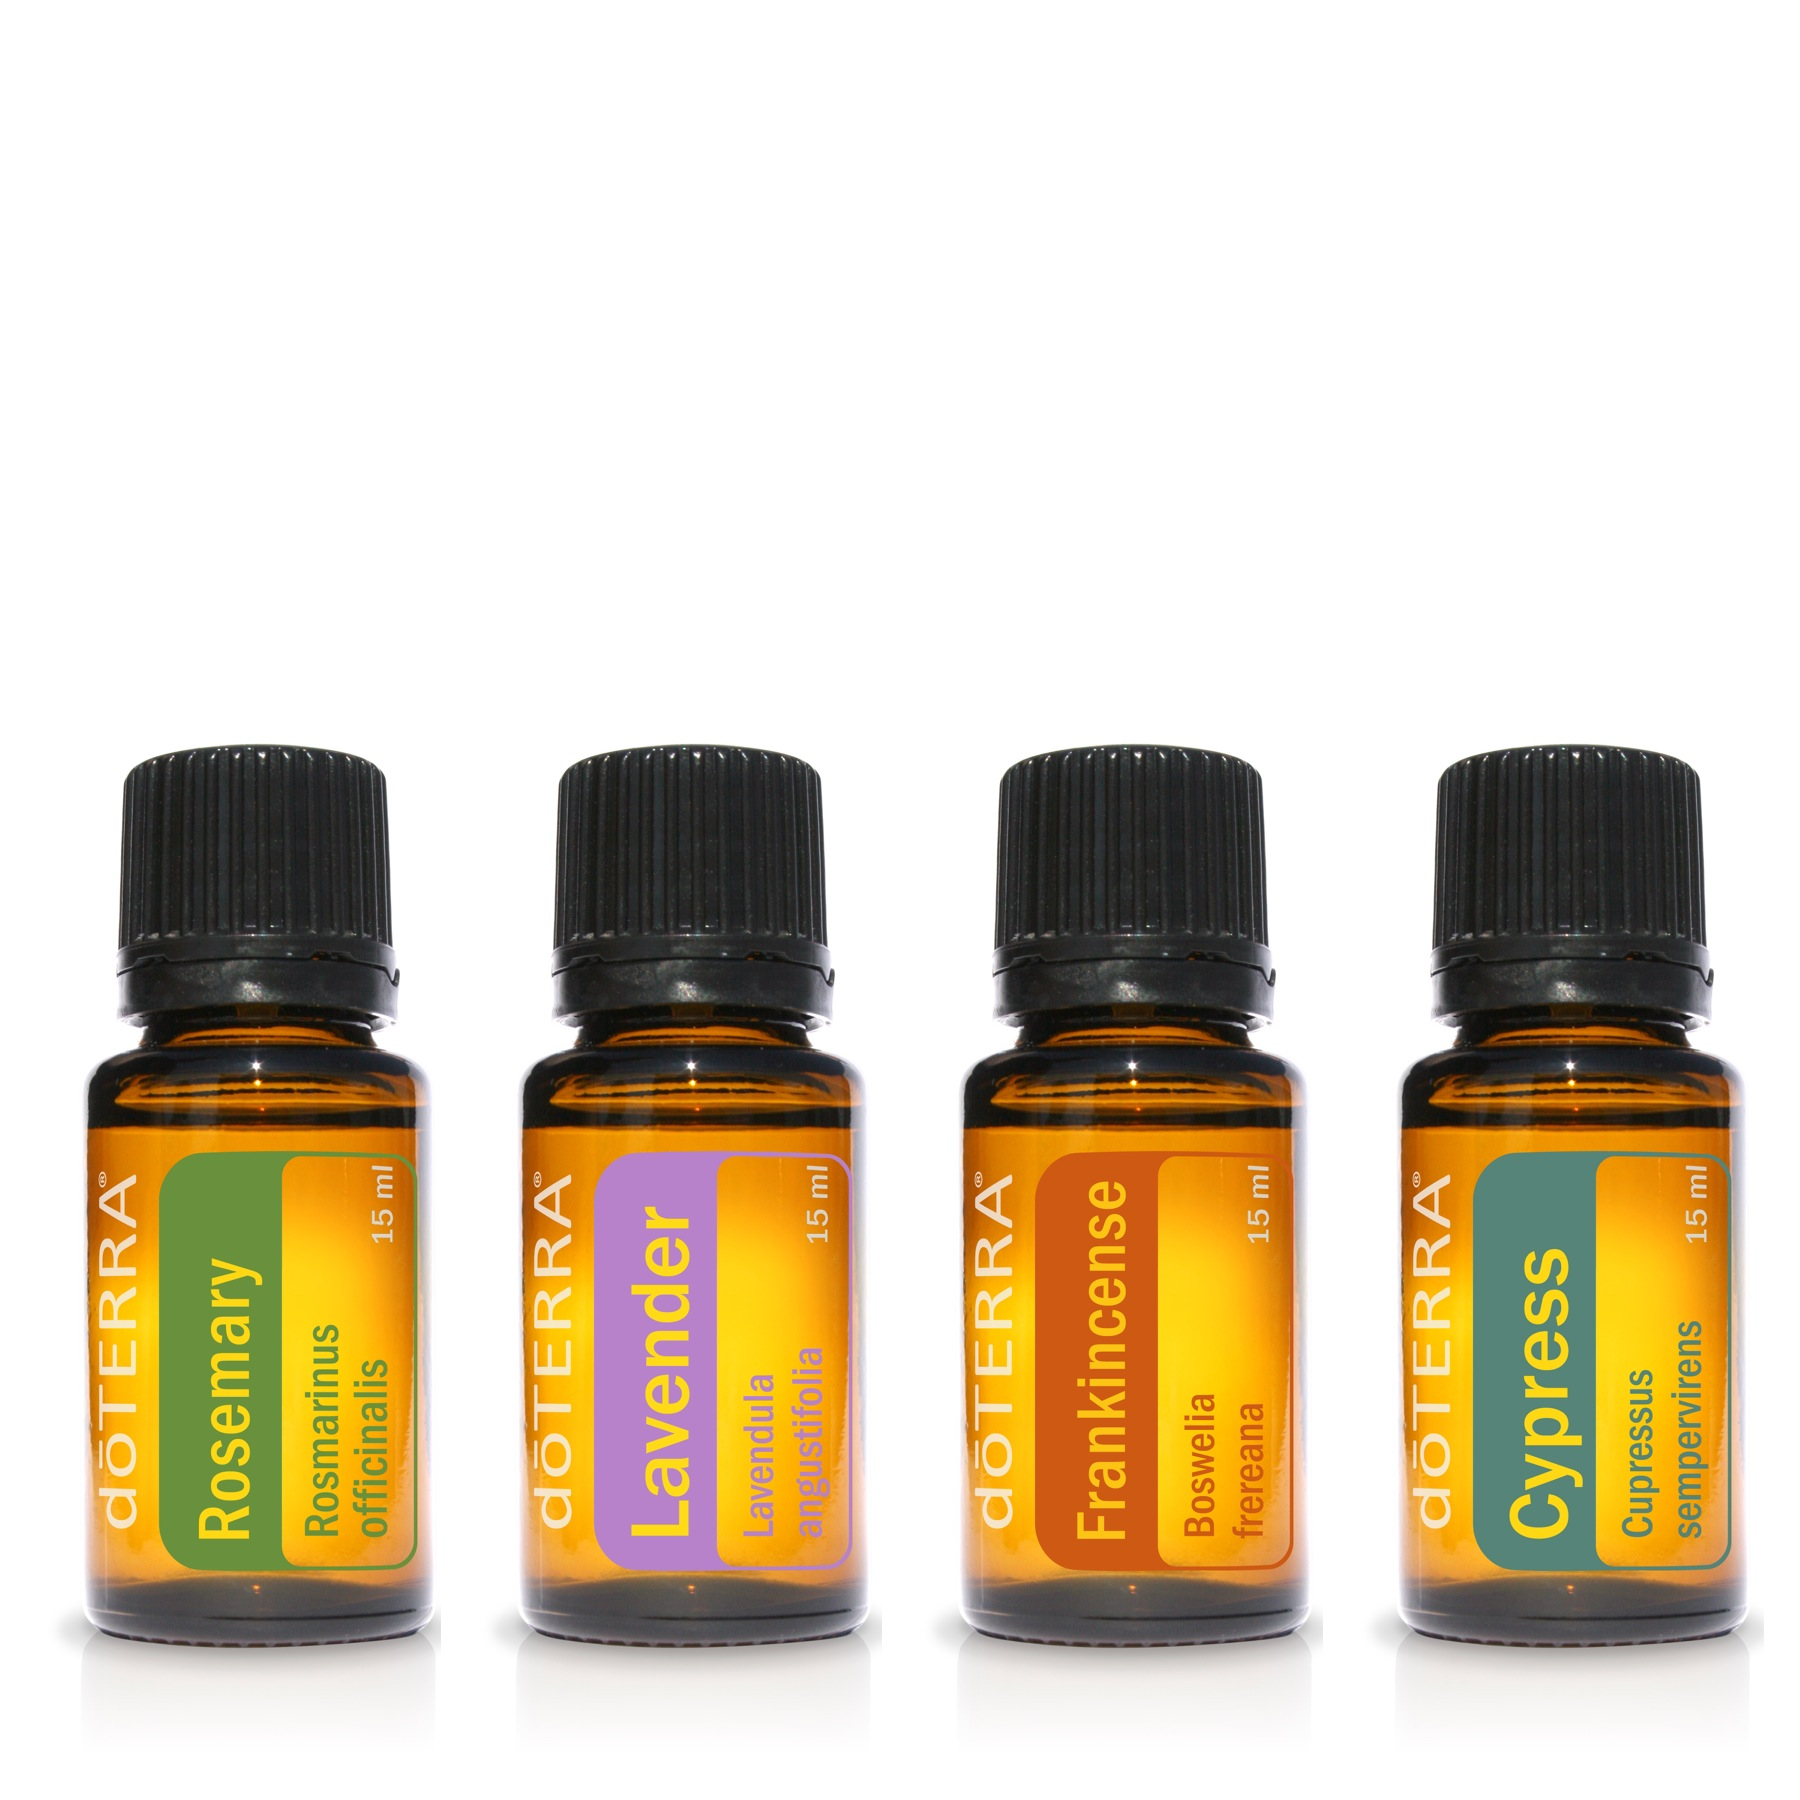 Holistic Living + Essential Oils